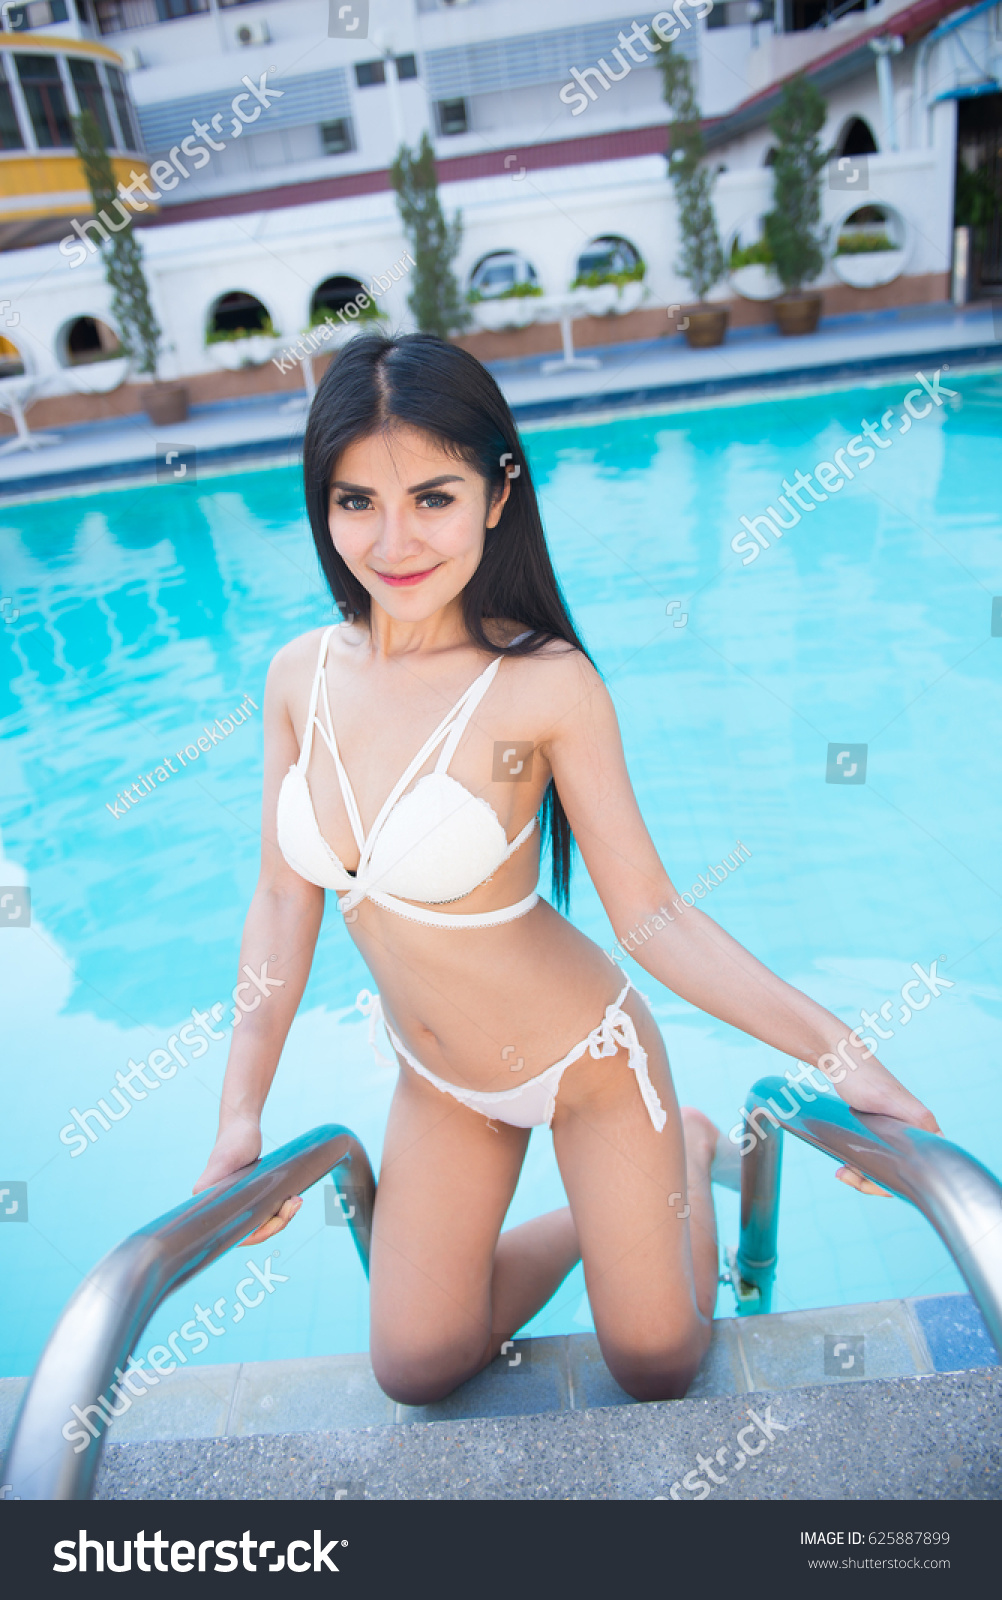 Can recommend hot asian girls swimming pool are absolutely